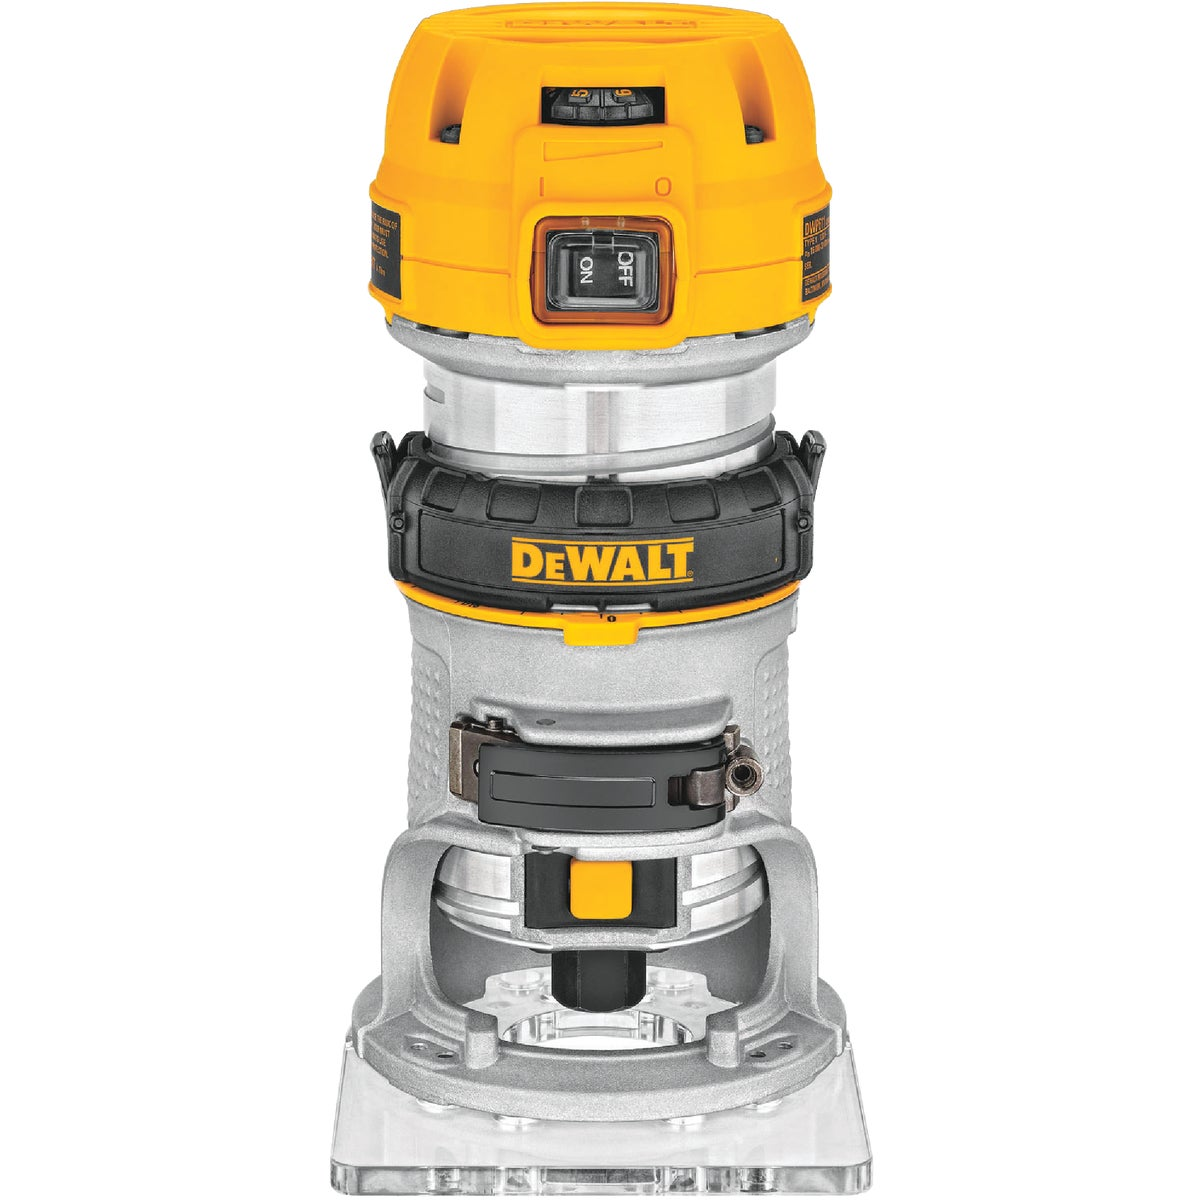 1.25HP PALM ROUTER - DWP611 by DeWalt